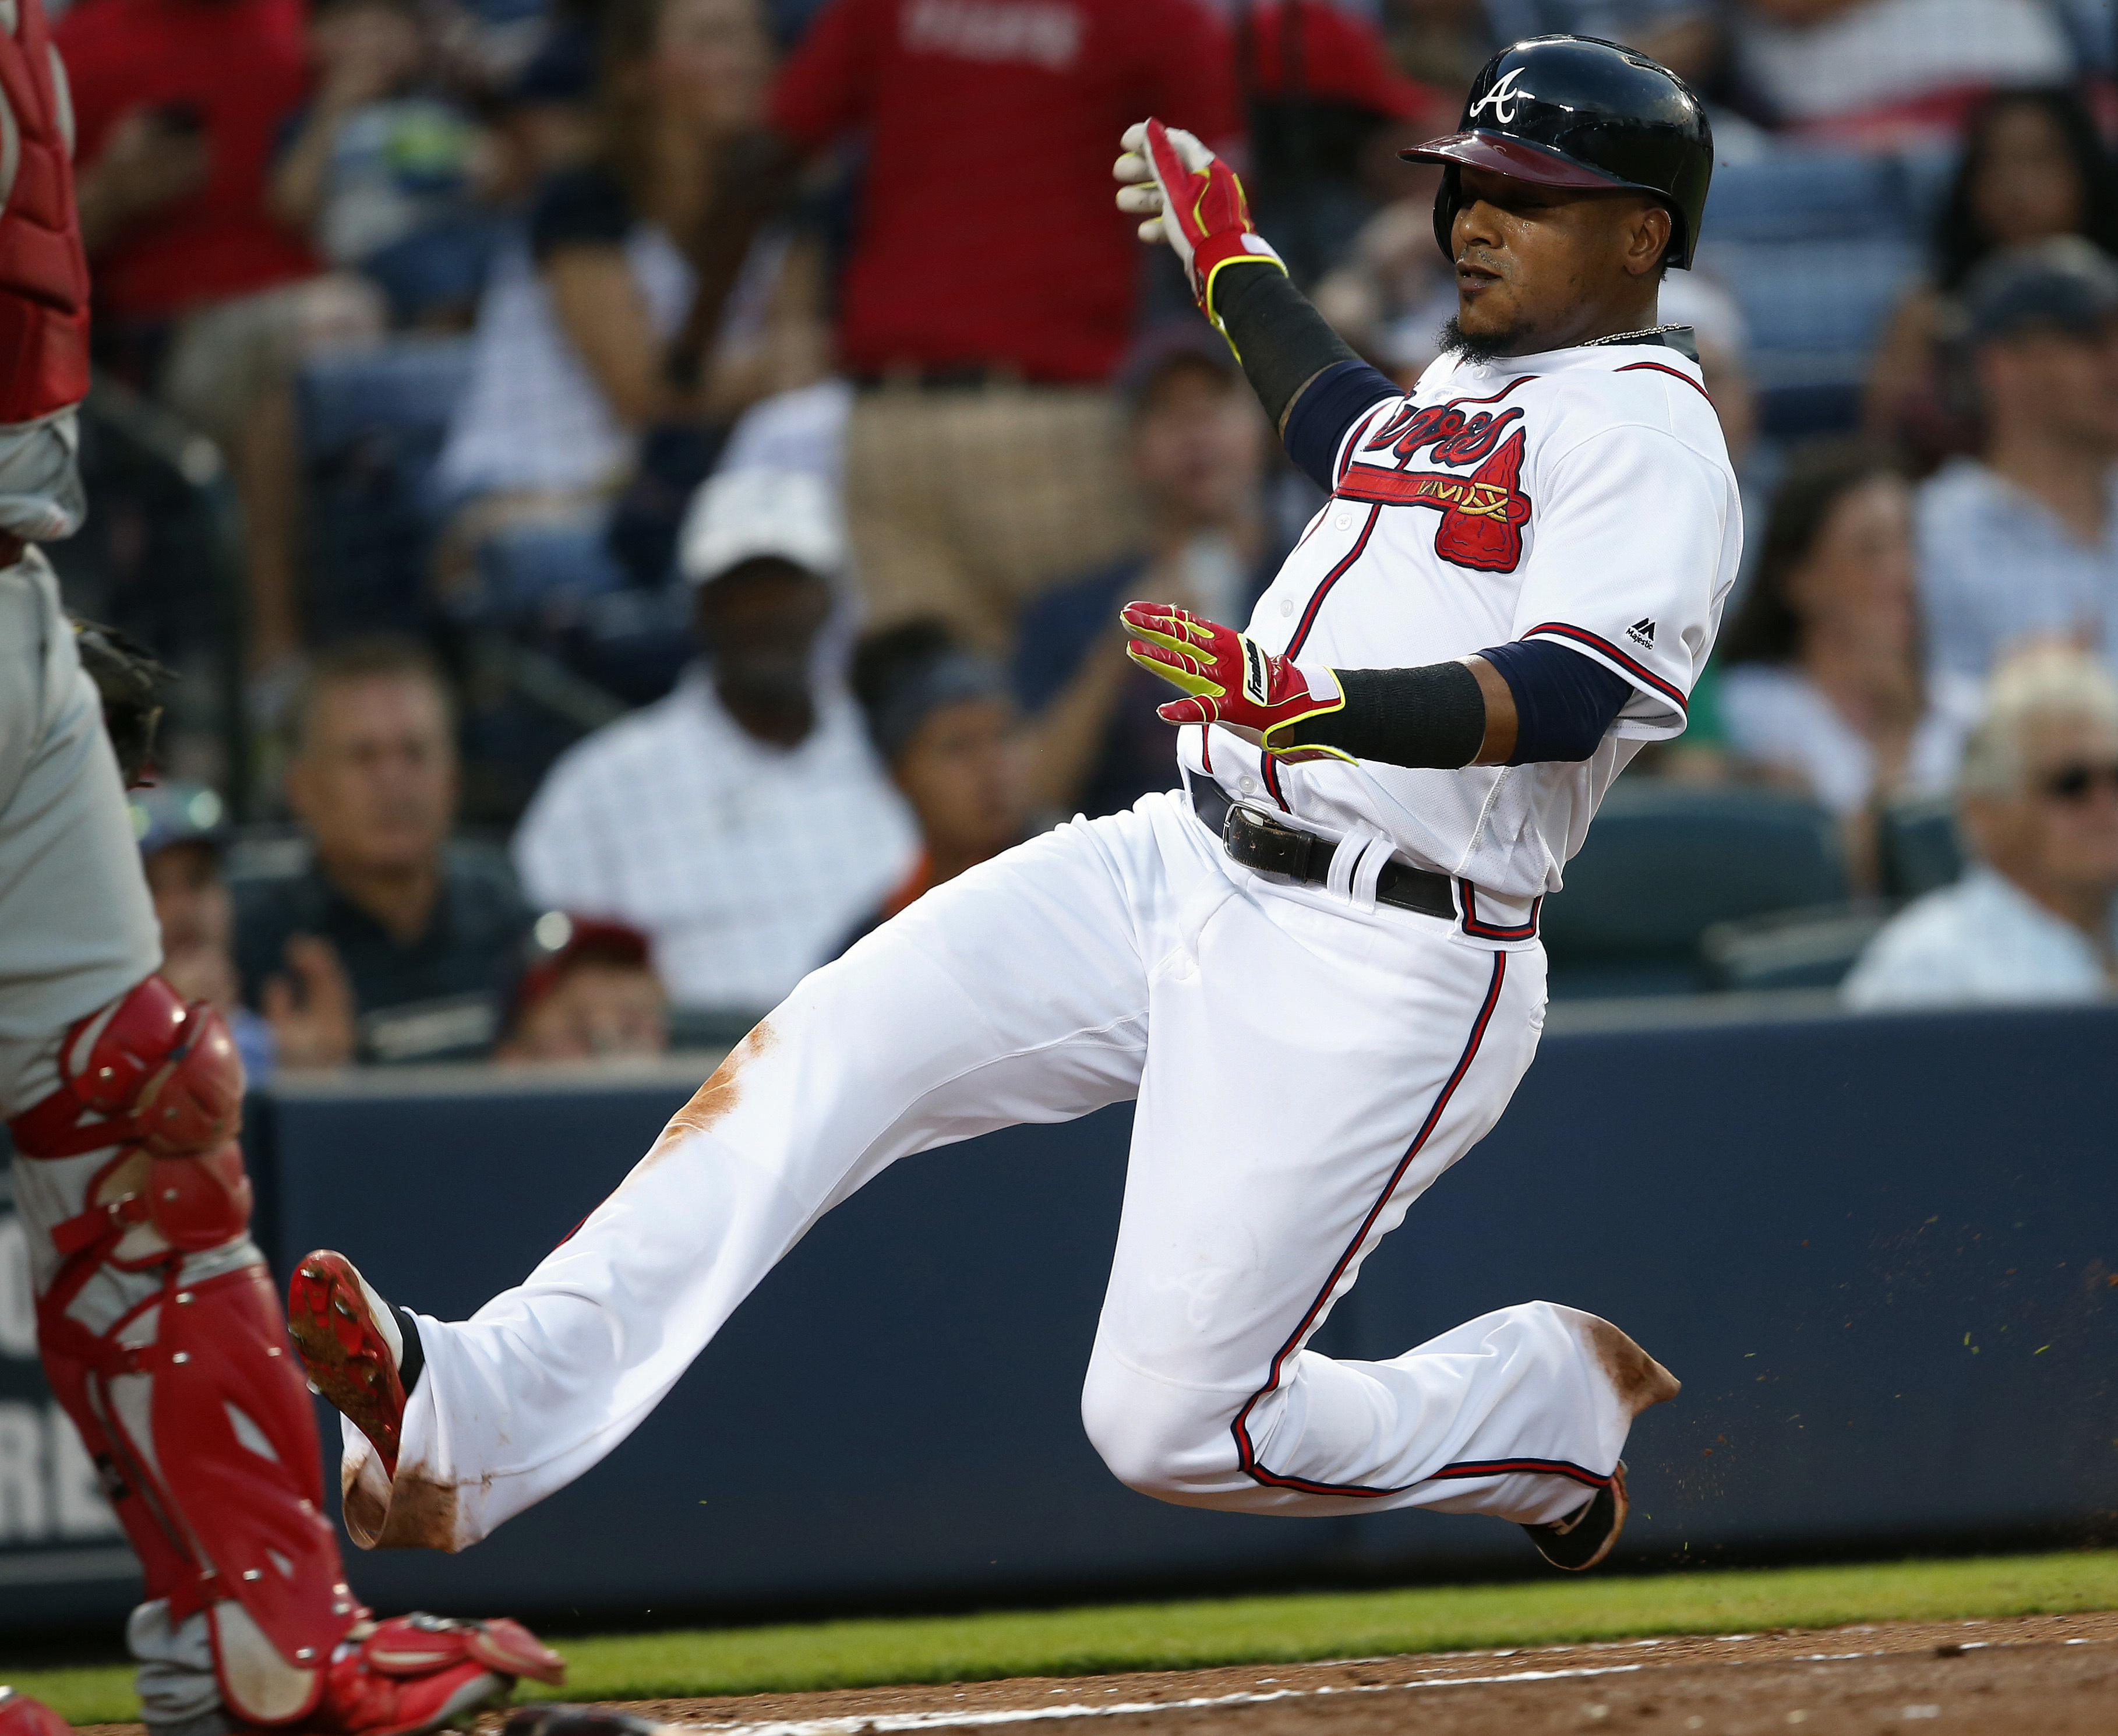 FILE - In this July 29, 2016, file photo, Atlanta Braves' Erick Aybar scores against the Philadelphia Phillies in a baseball game in Atlanta .Aybar has been traded to the Detroit Tigers for minor league catcher Kade Scivicque. Aybar gives the Tigers exper